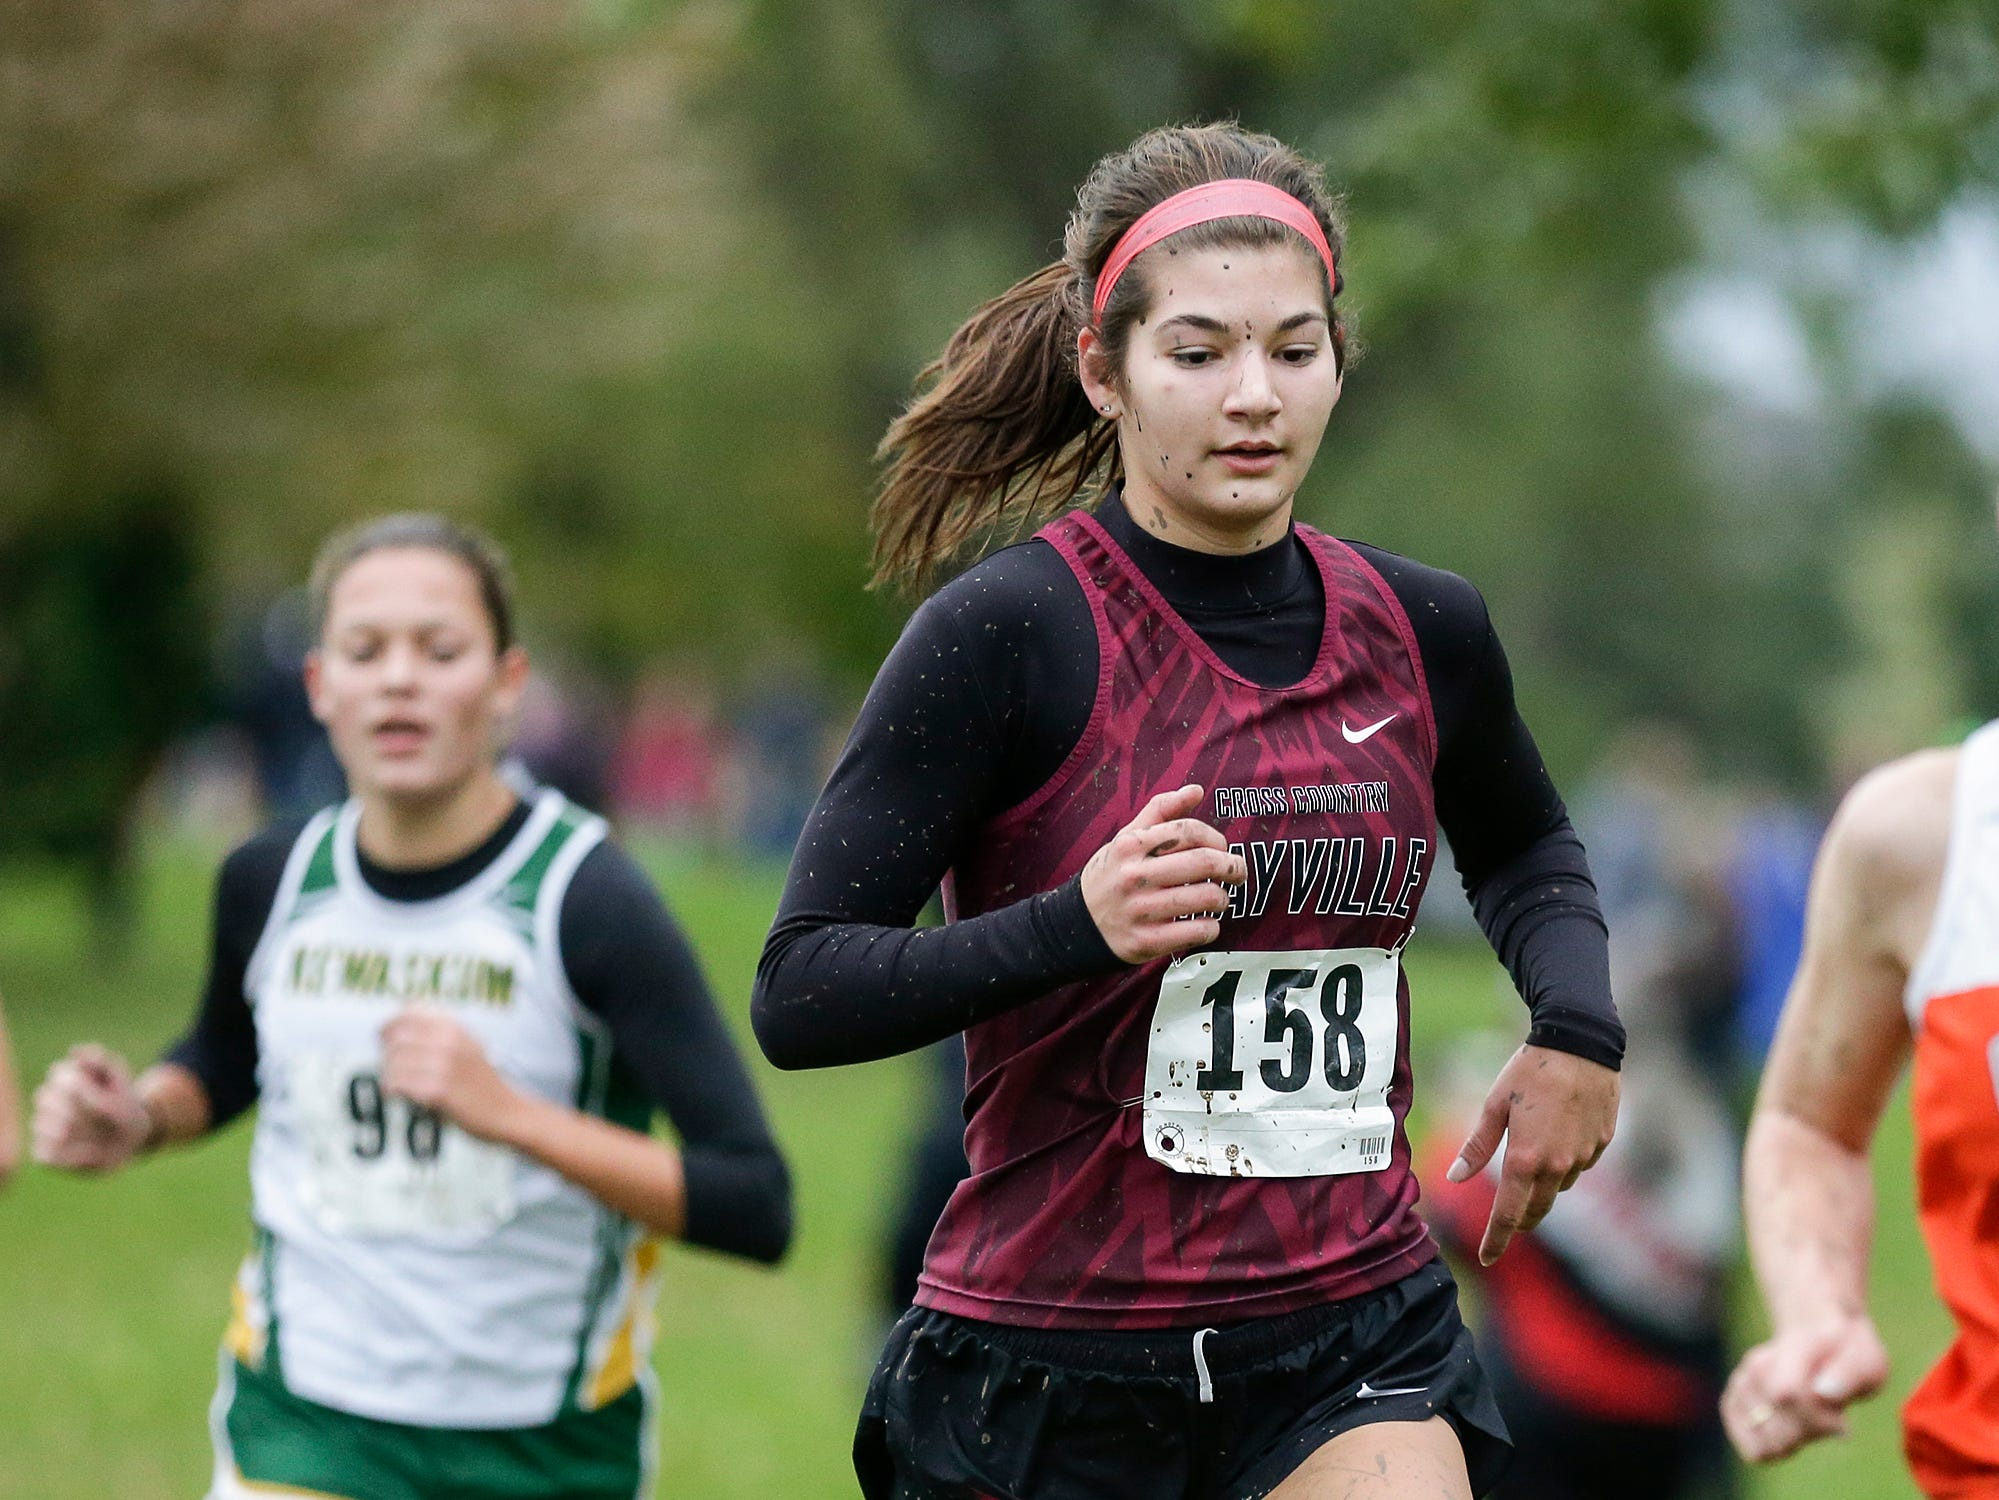 Mayville High School's Amber Schaufnagel runs in the WIAA Division two Mayville sectional cross country meet at the Mayville golf course Friday, October 19, 2018. Doug Raflik/USA TODAY NETWORK-Wisconsin